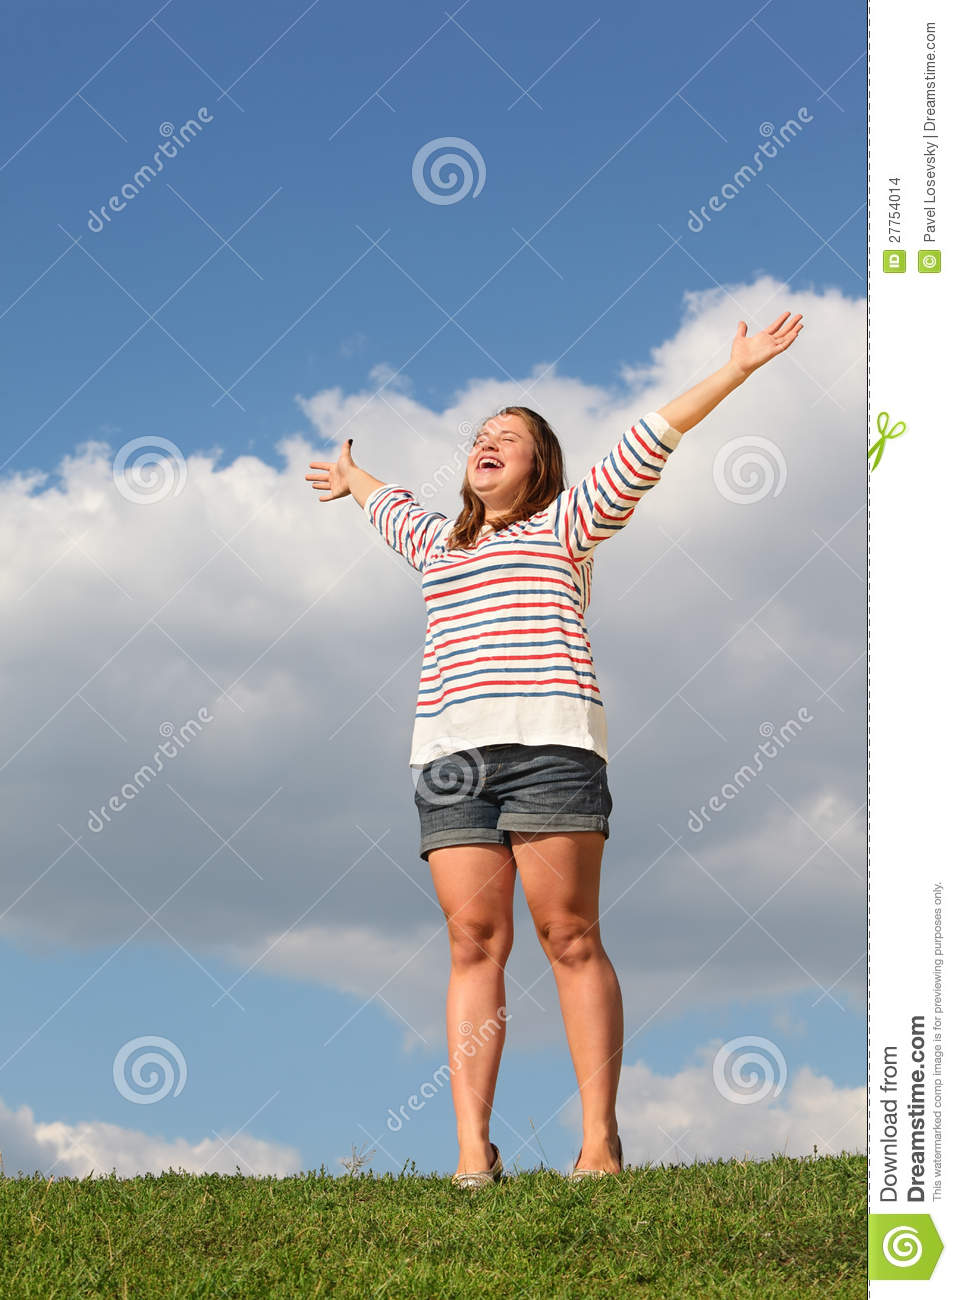 Young fat girl stands at grass, raises her hands